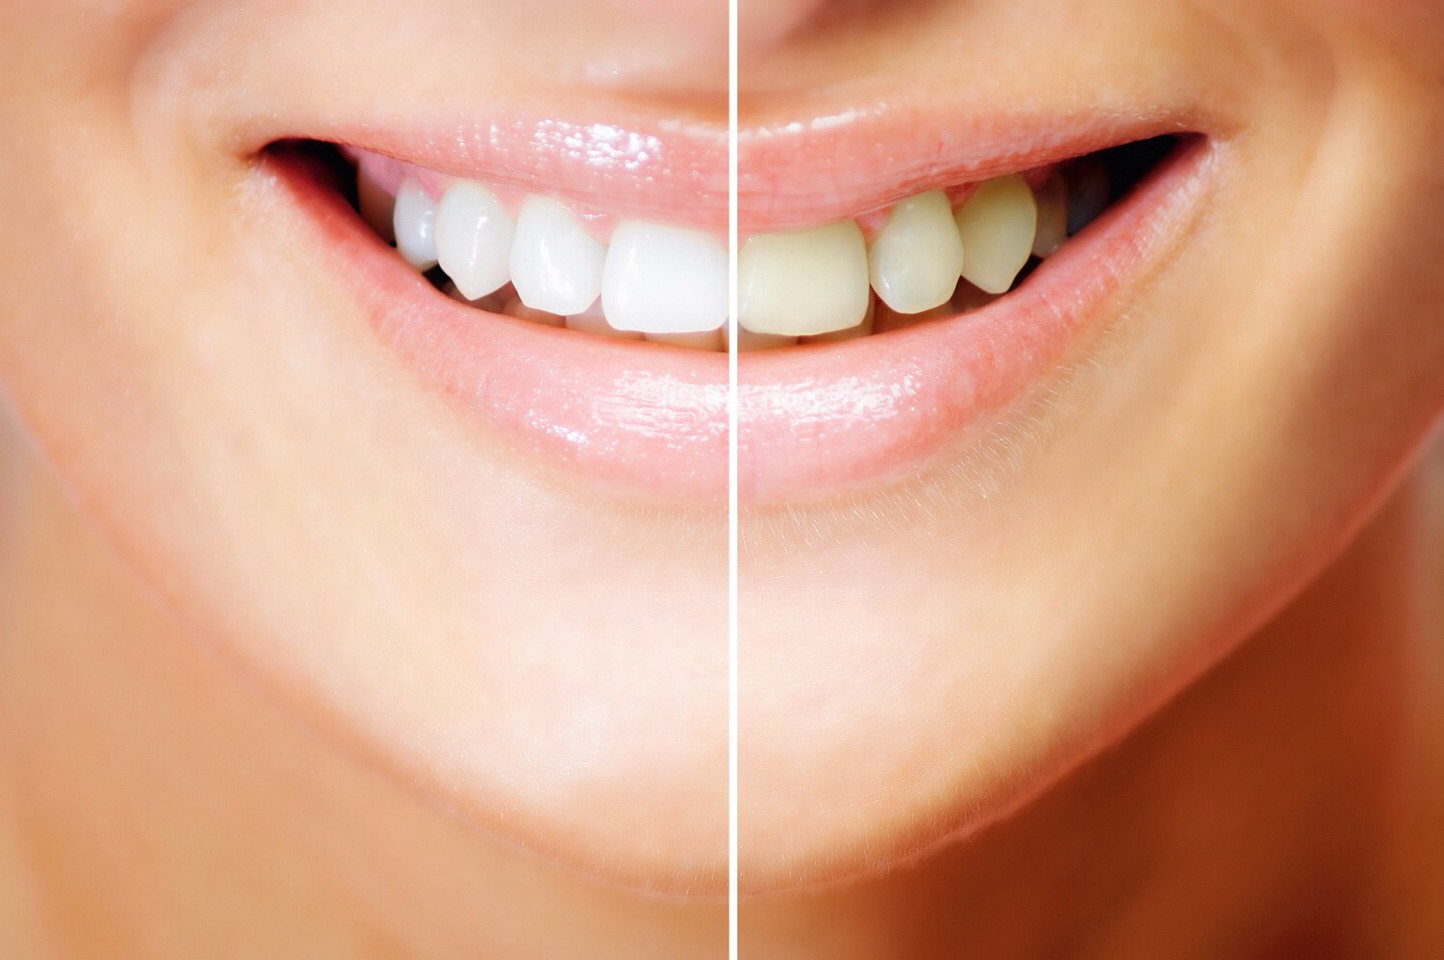 How To Whiten Teeth Use Baking Soda And Lemon Juice Make A Paste